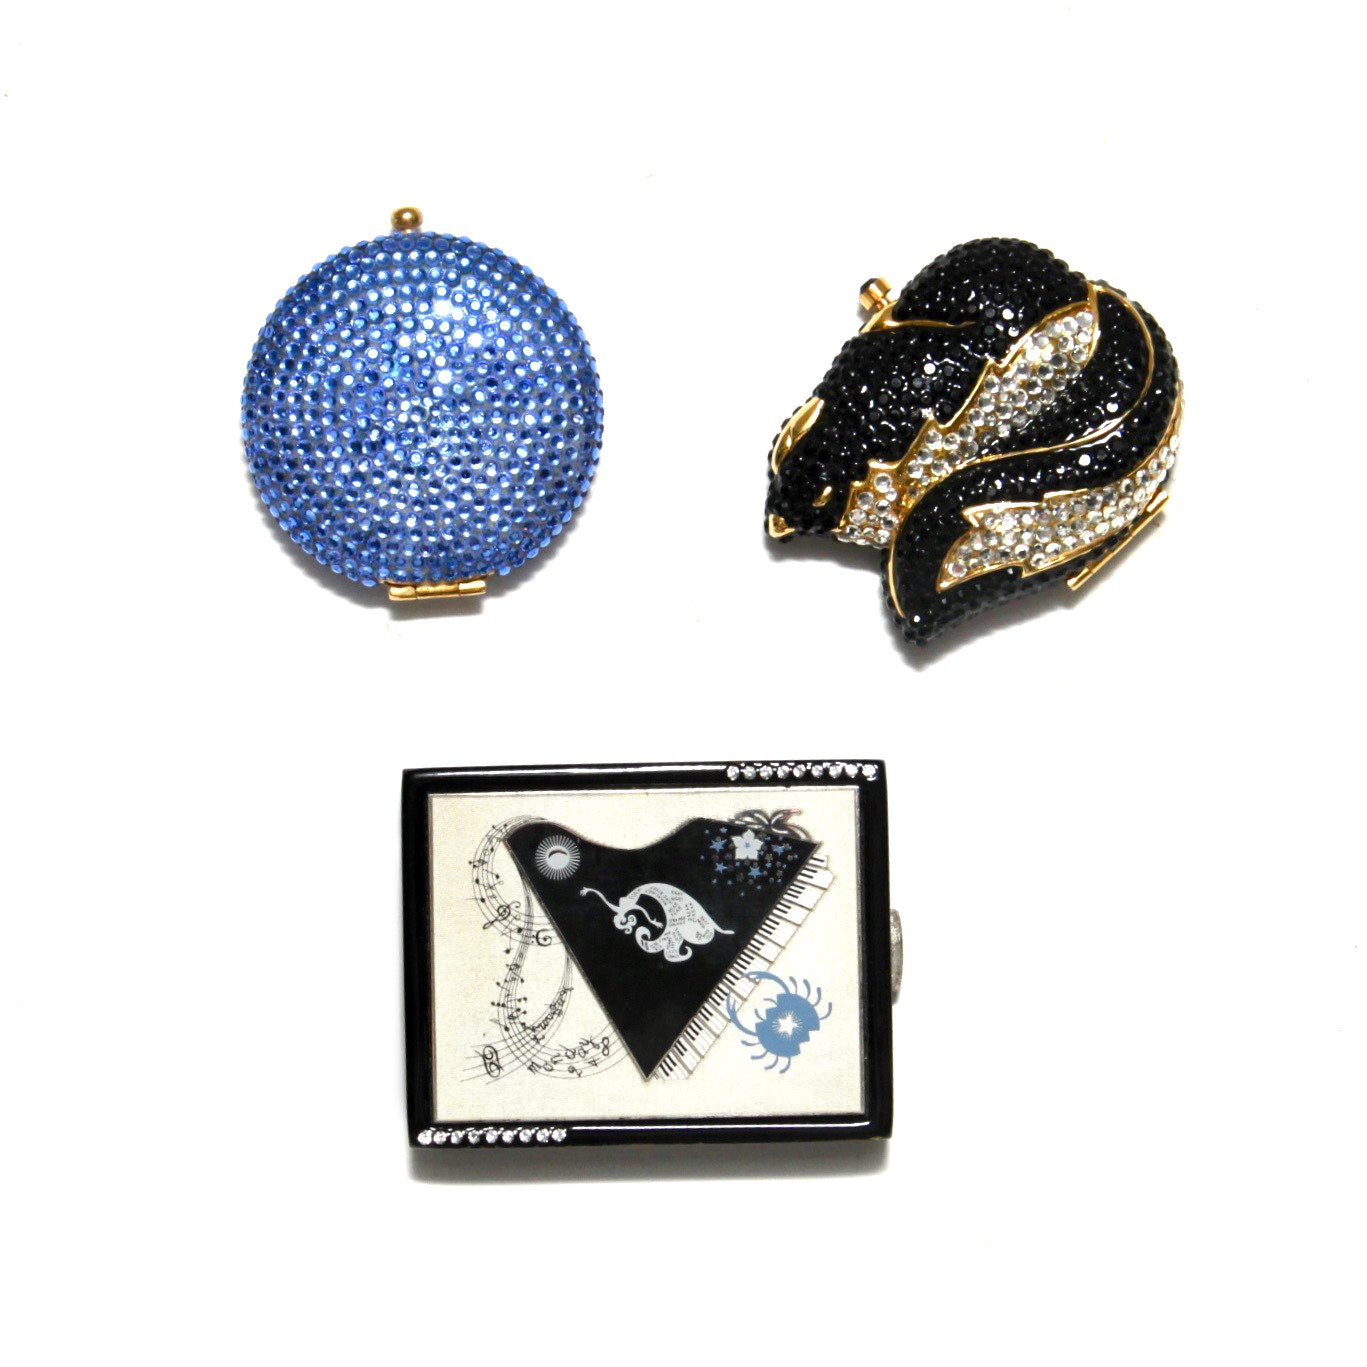 A Selection of Estee' Lauder Compacts to Include Erte' Astrological Sign Cancer